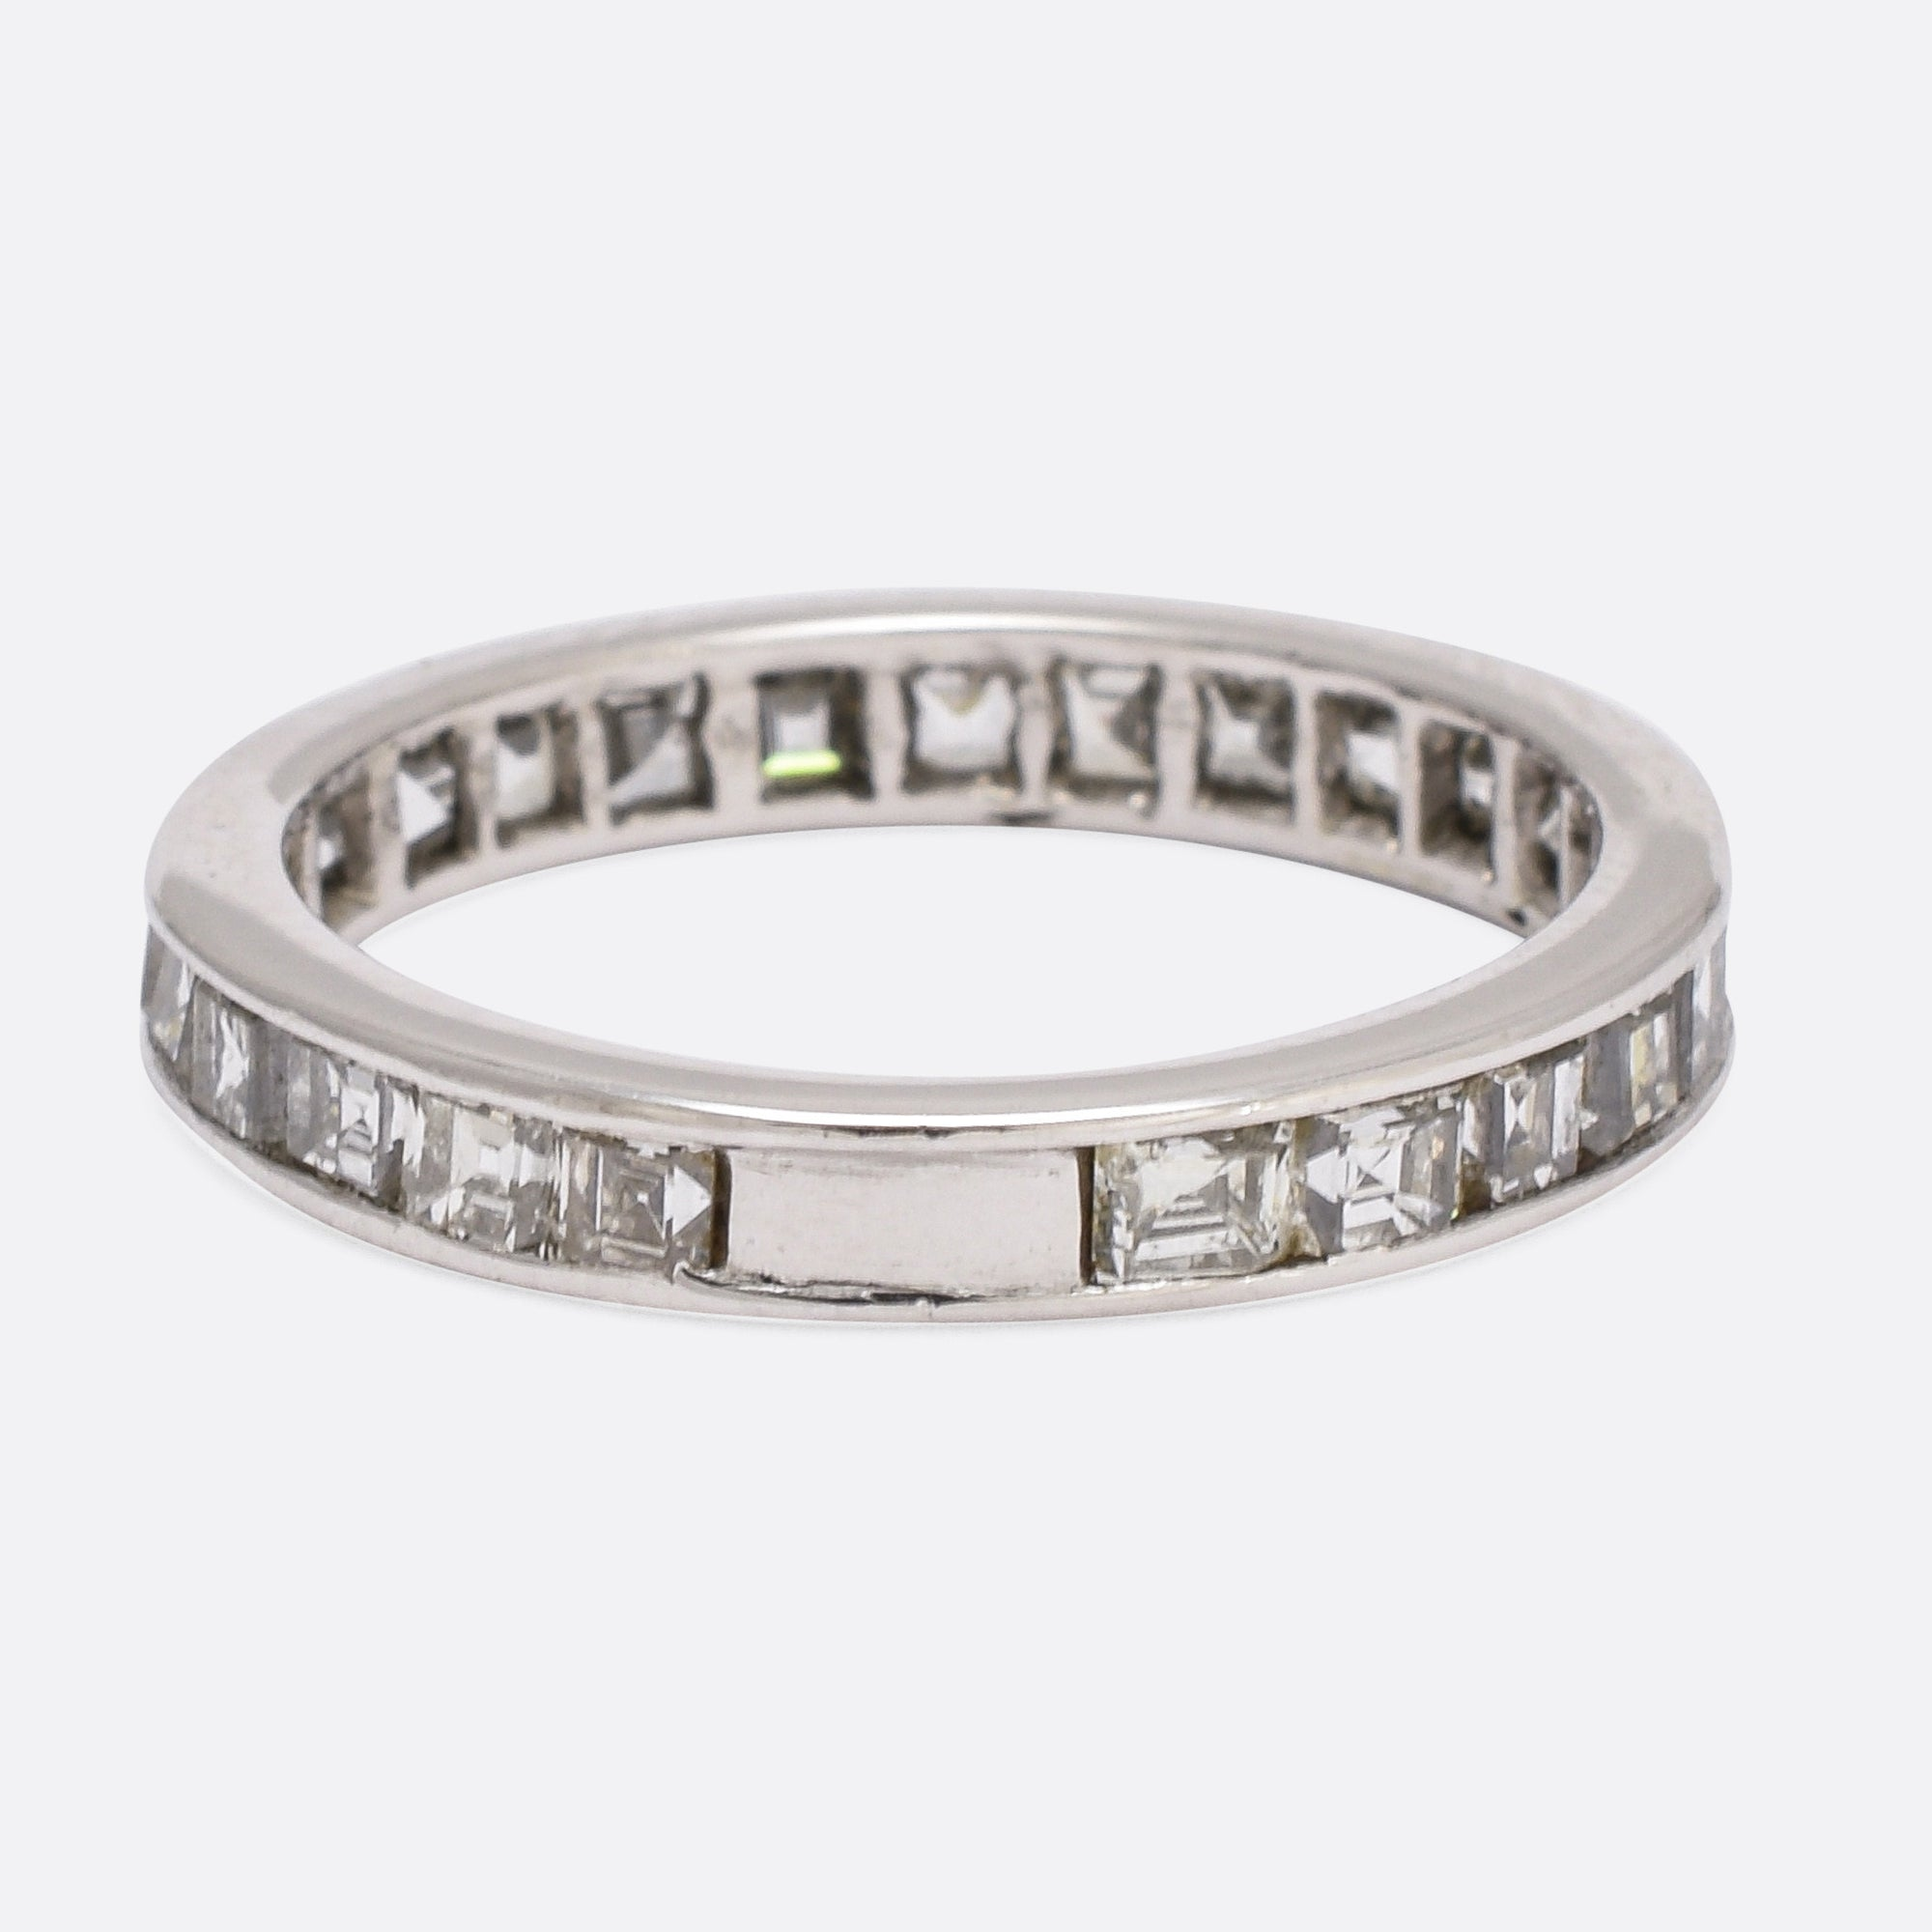 in diamondices gaincess cut ct eternity full chart diamond tag size price ring atlanta tanishq fascinating inspirations tags caratice band of picture bands per